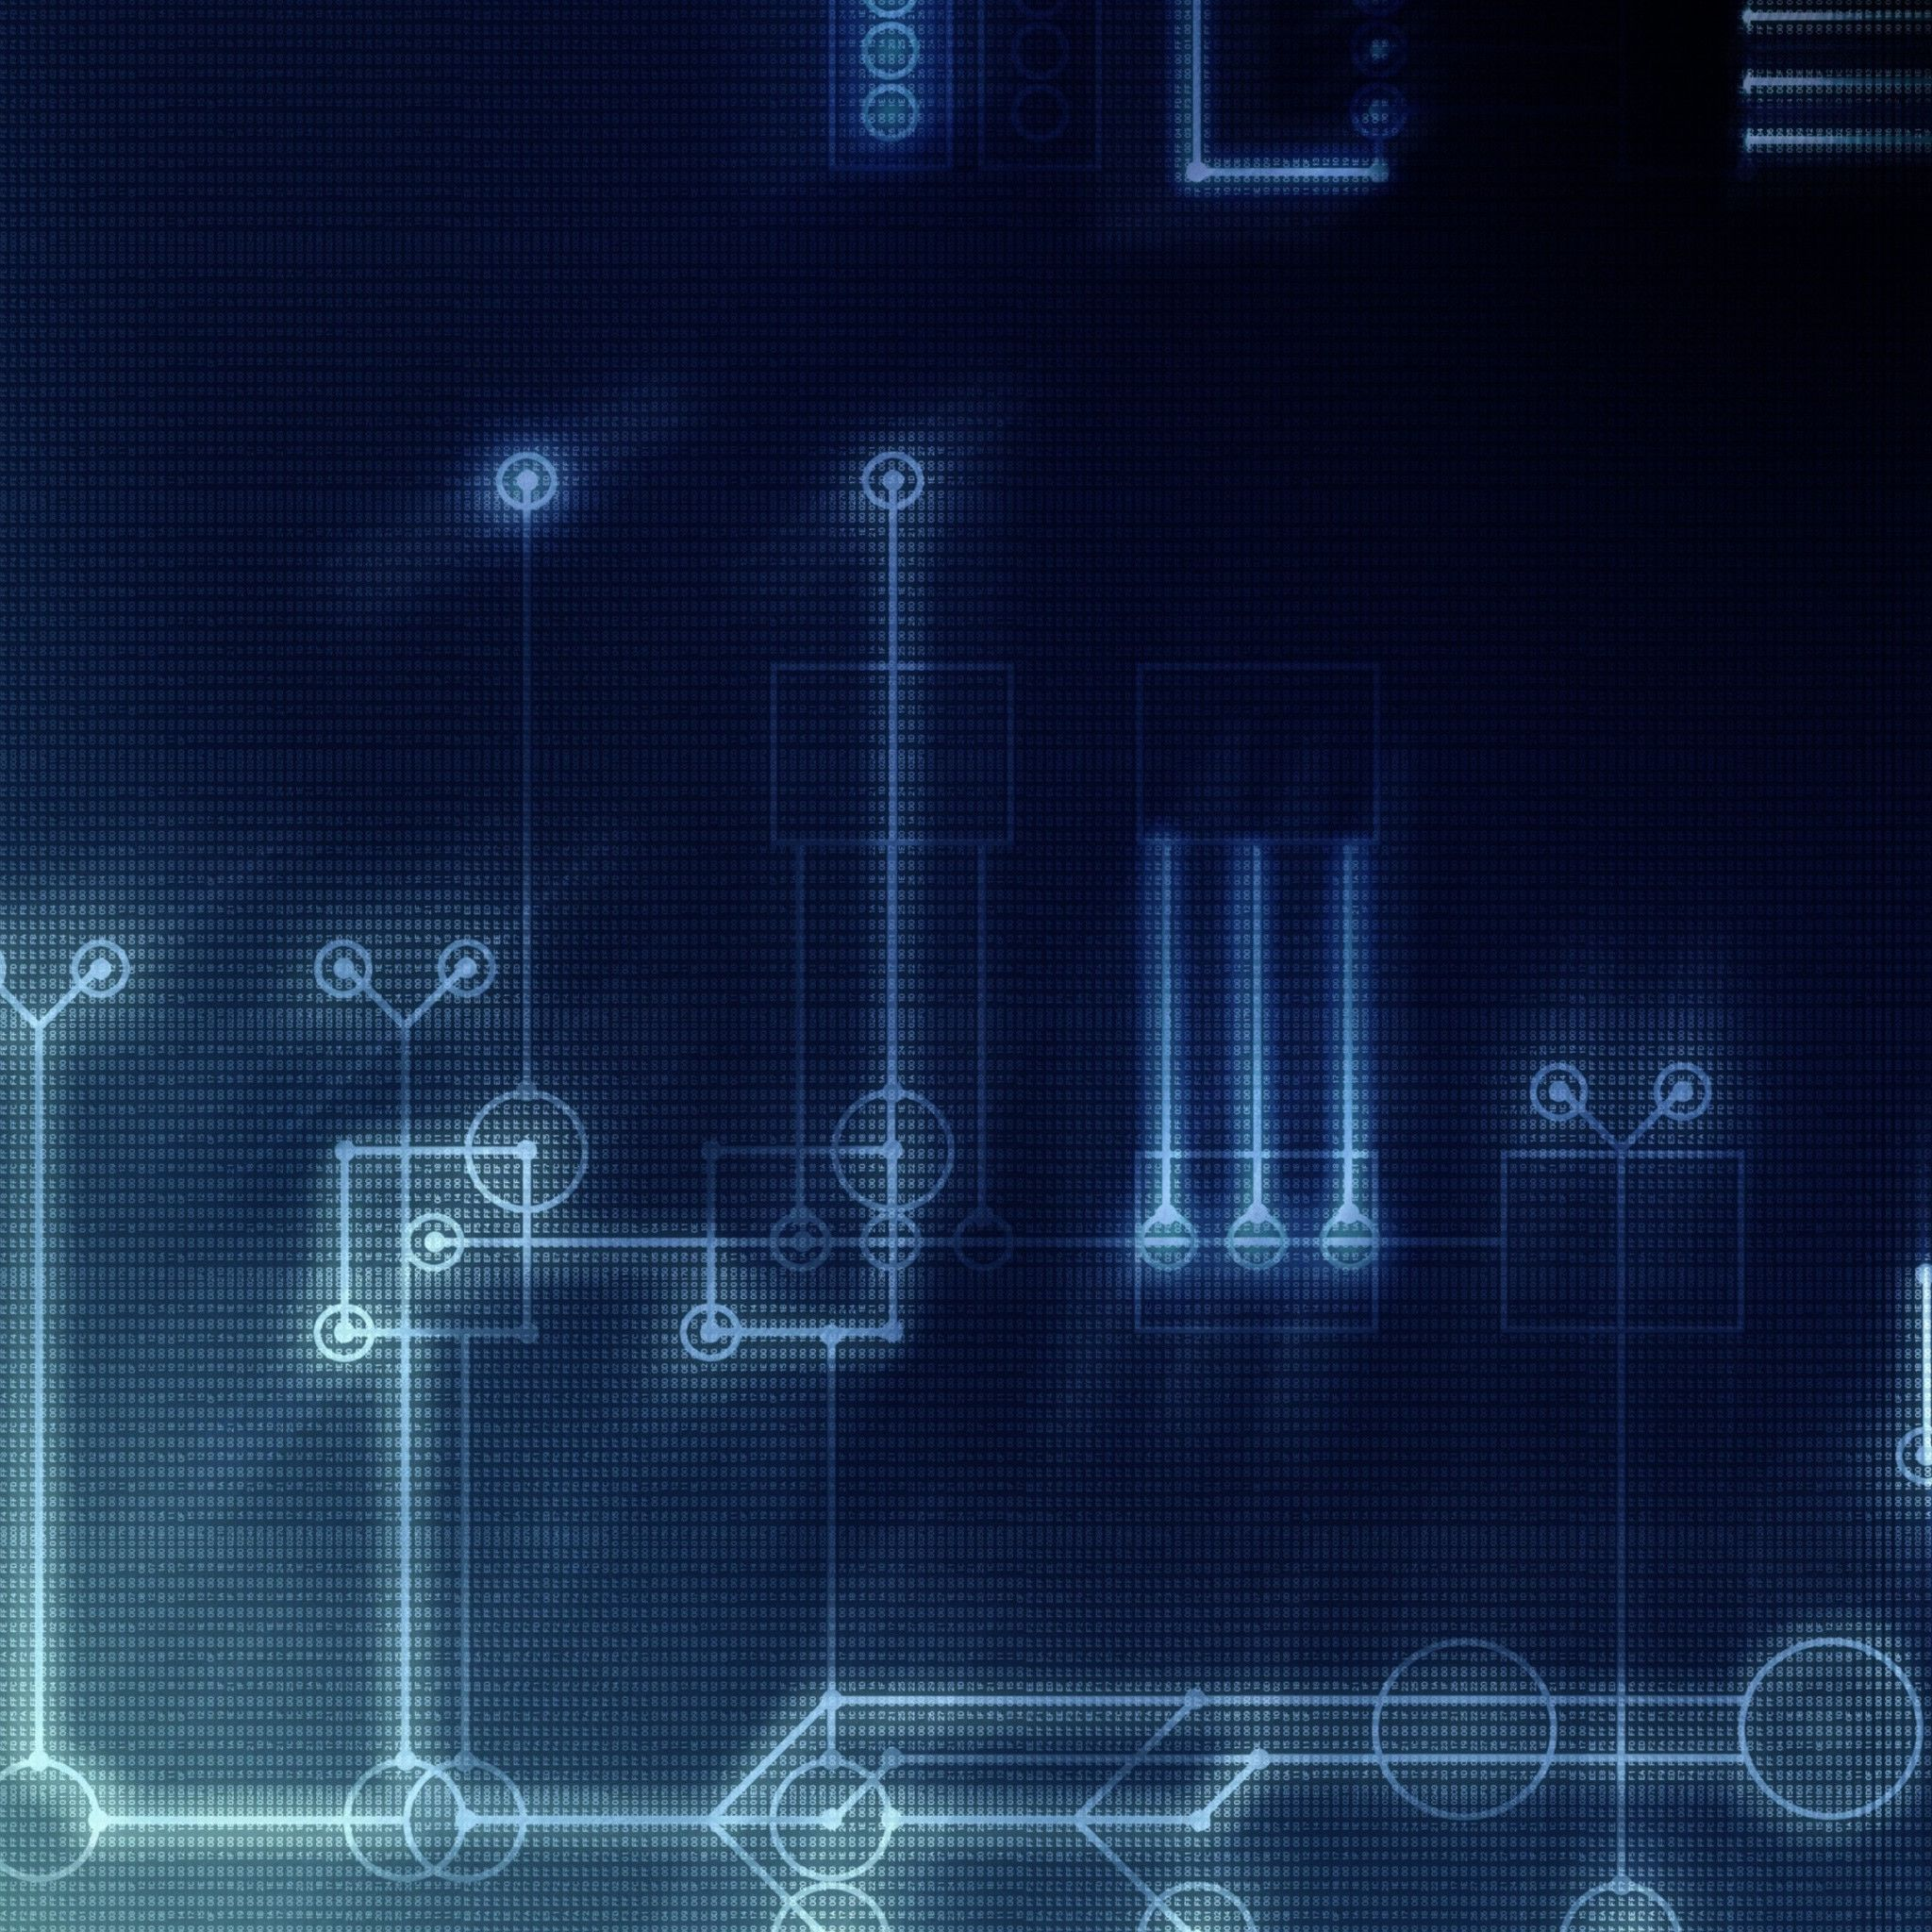 Abstract Technology Wallpapers